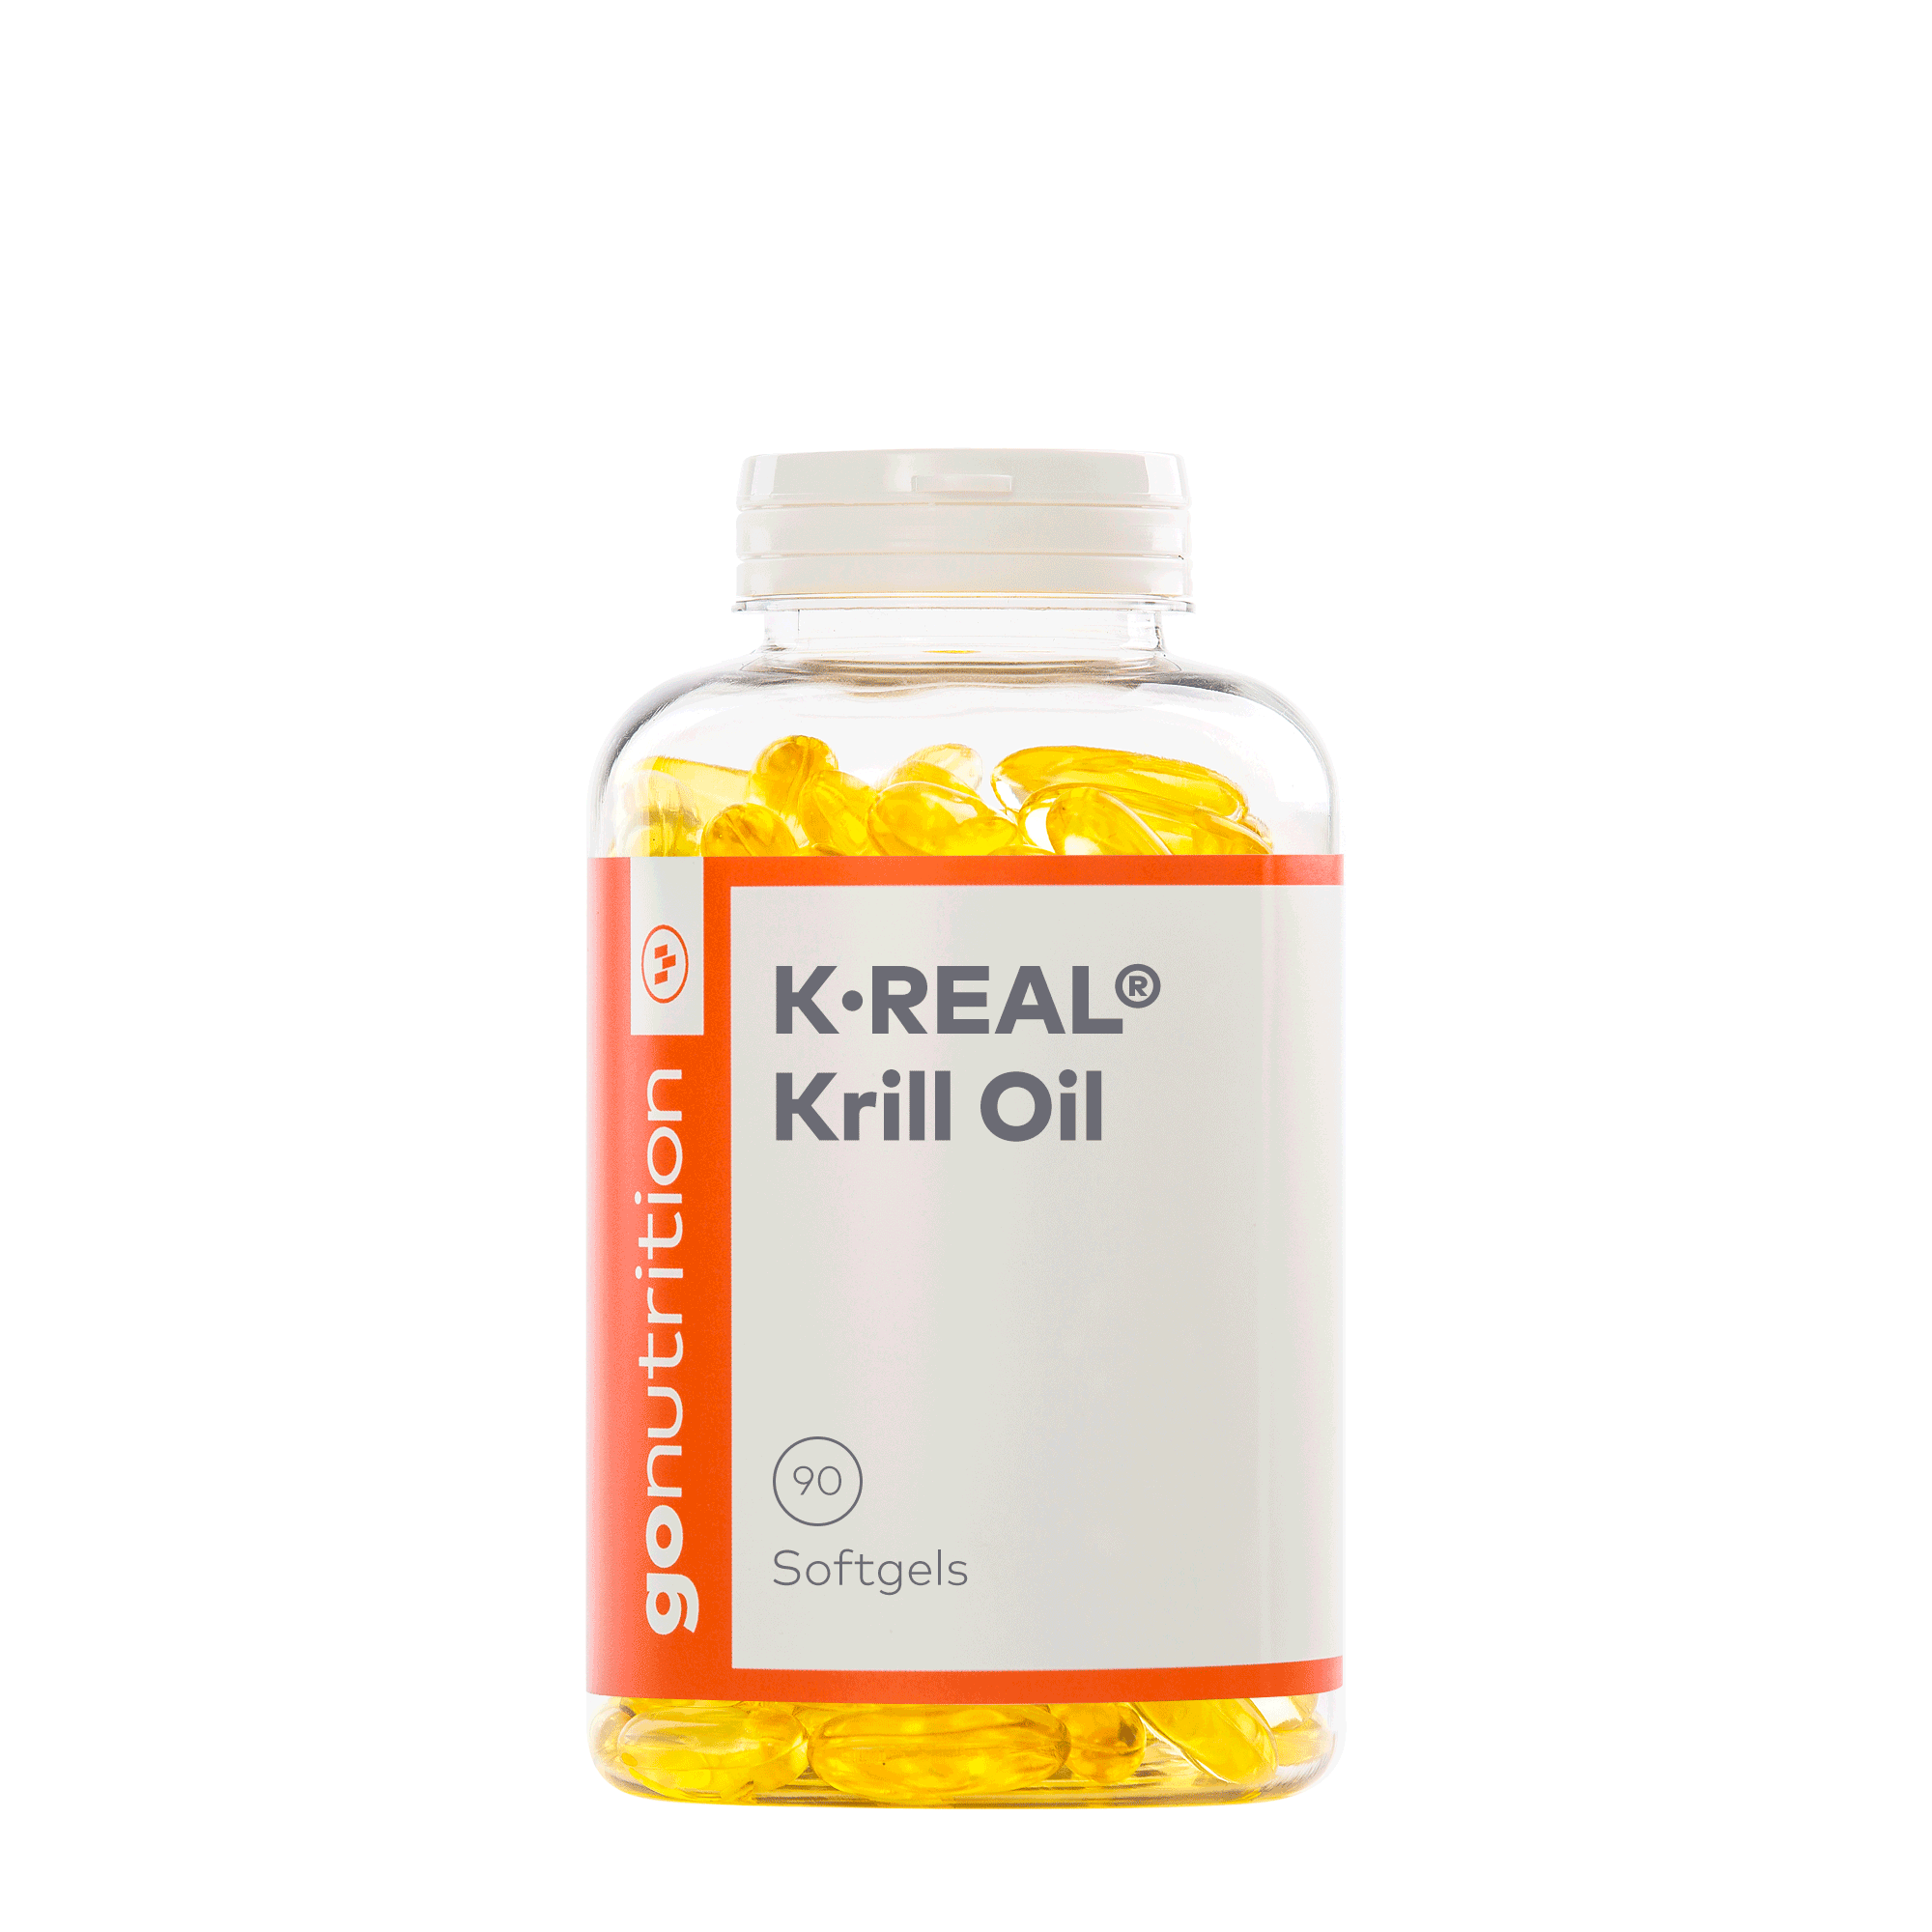 Gonutrition k real krill oil 90 softgels at fitness savvy for Fish oil pills for weight loss